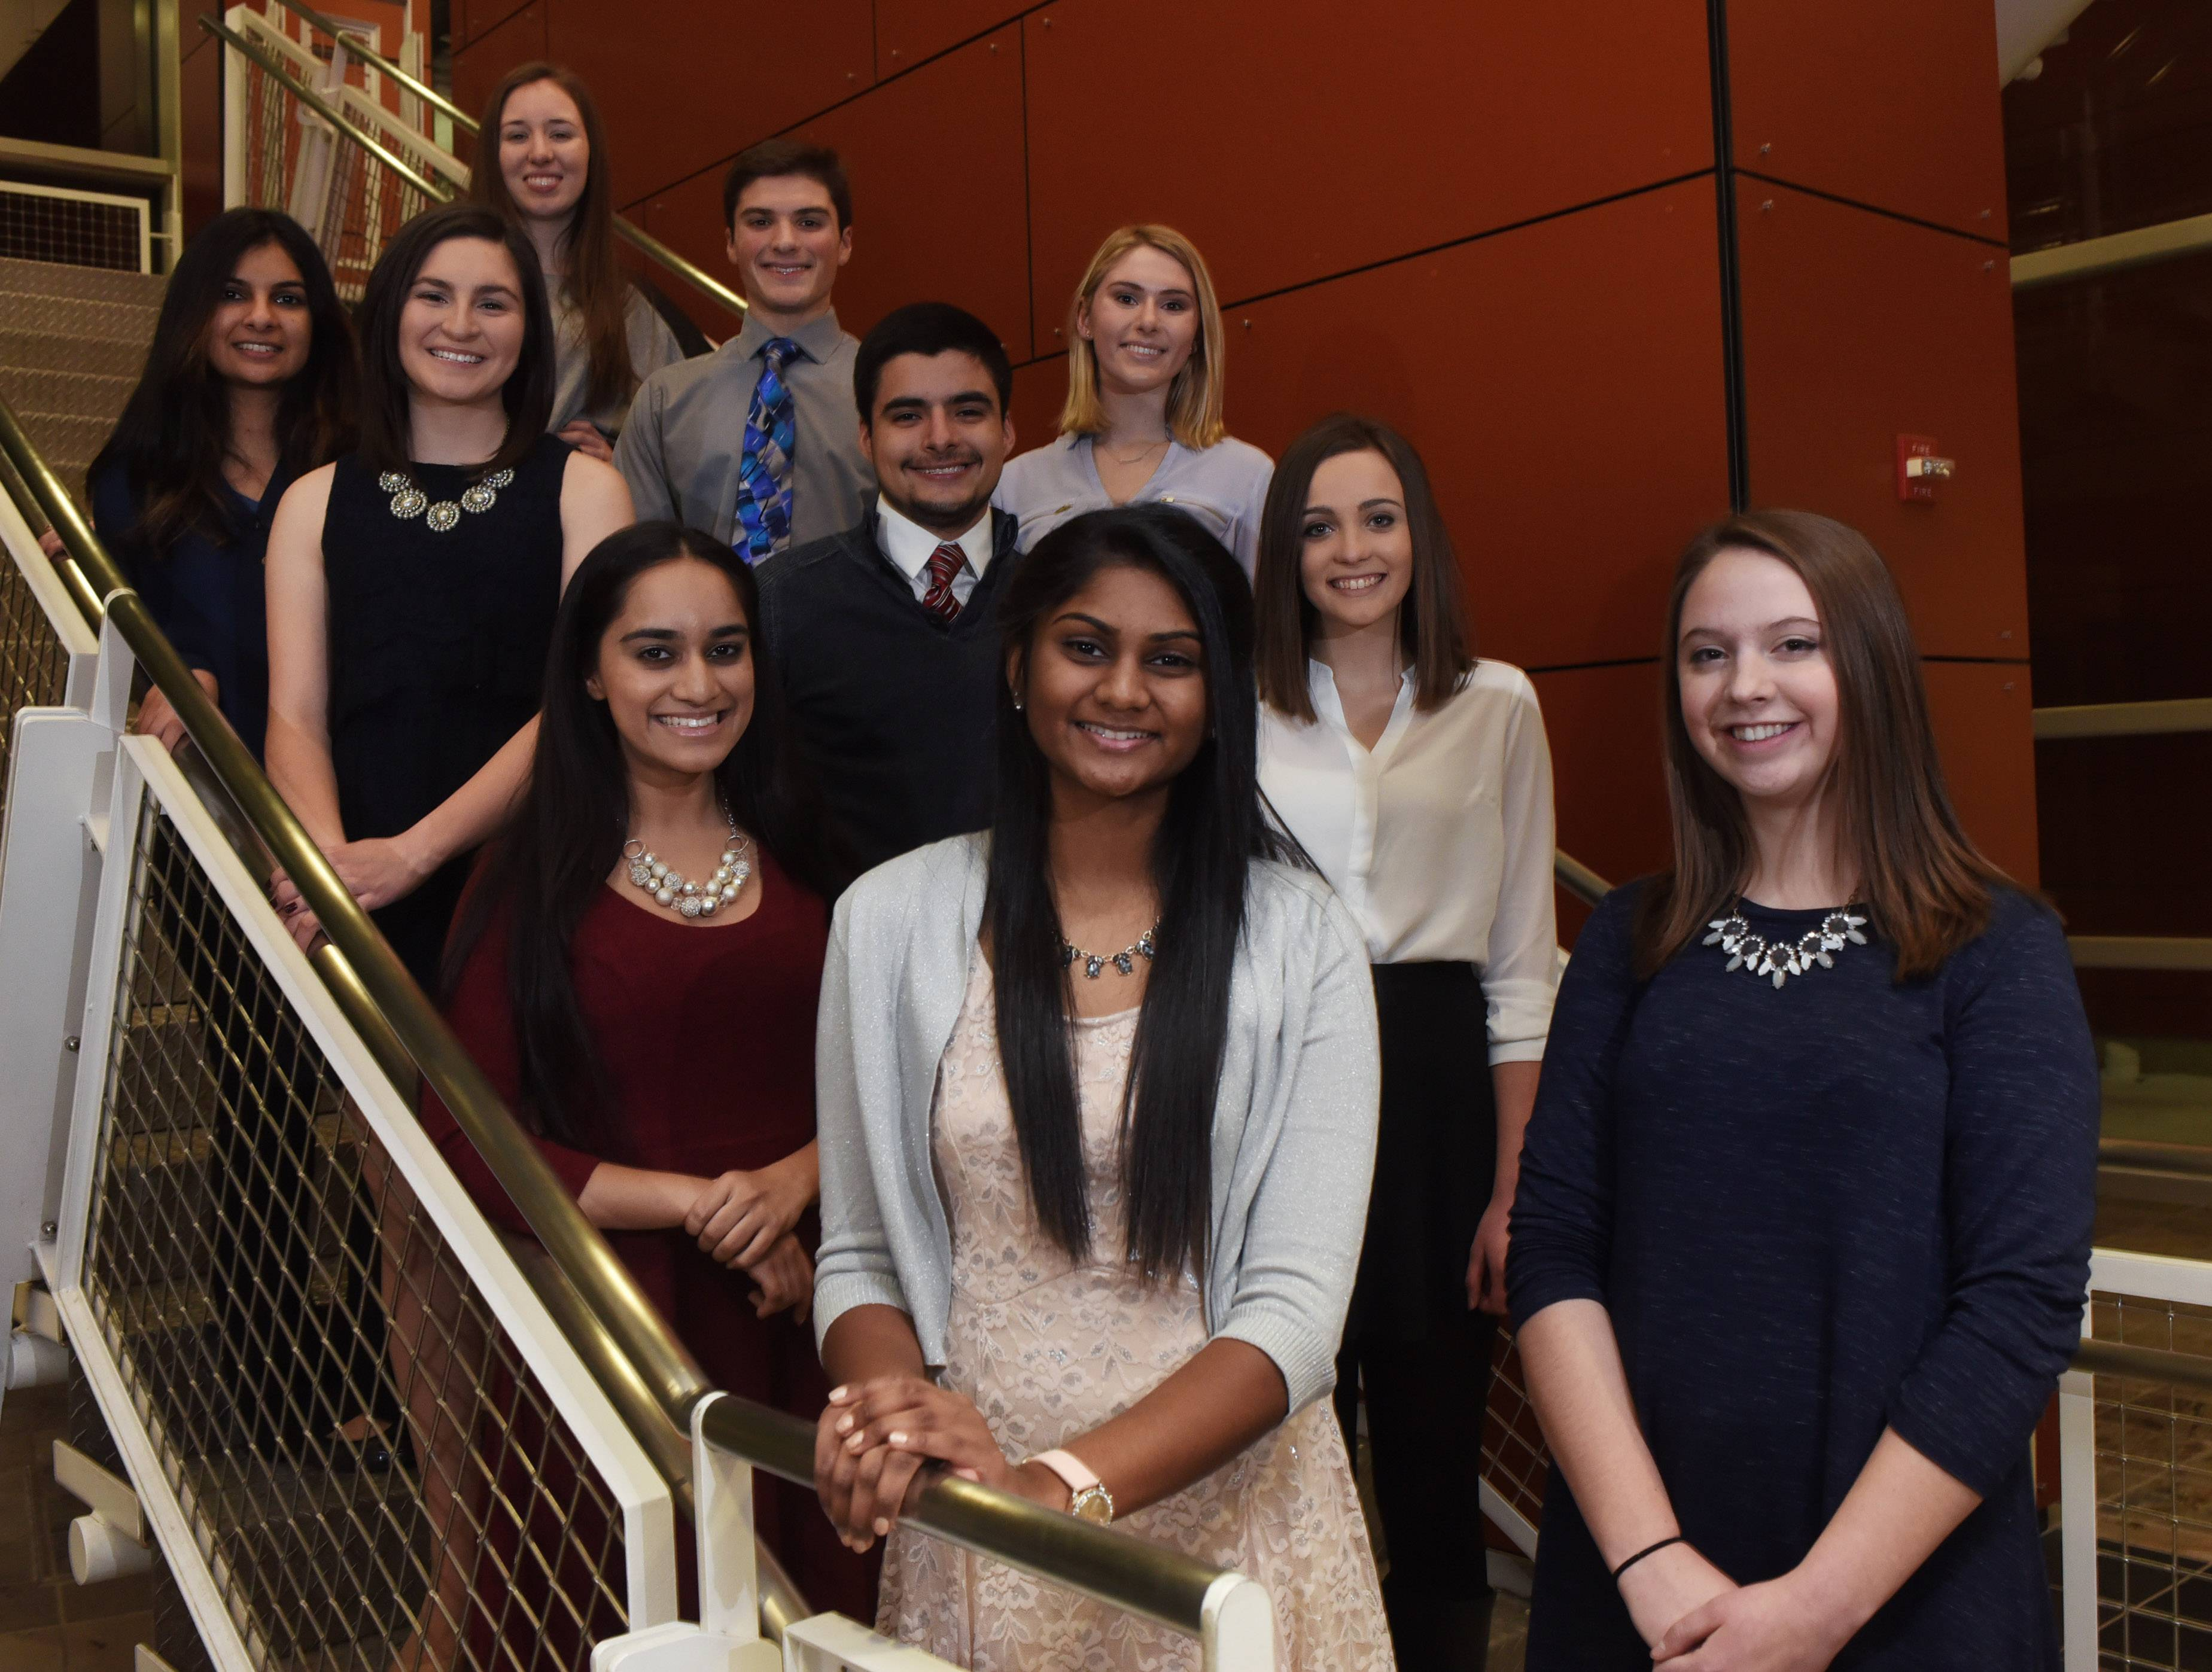 Honoring the 2015-16 Daily Herald Leadership Team